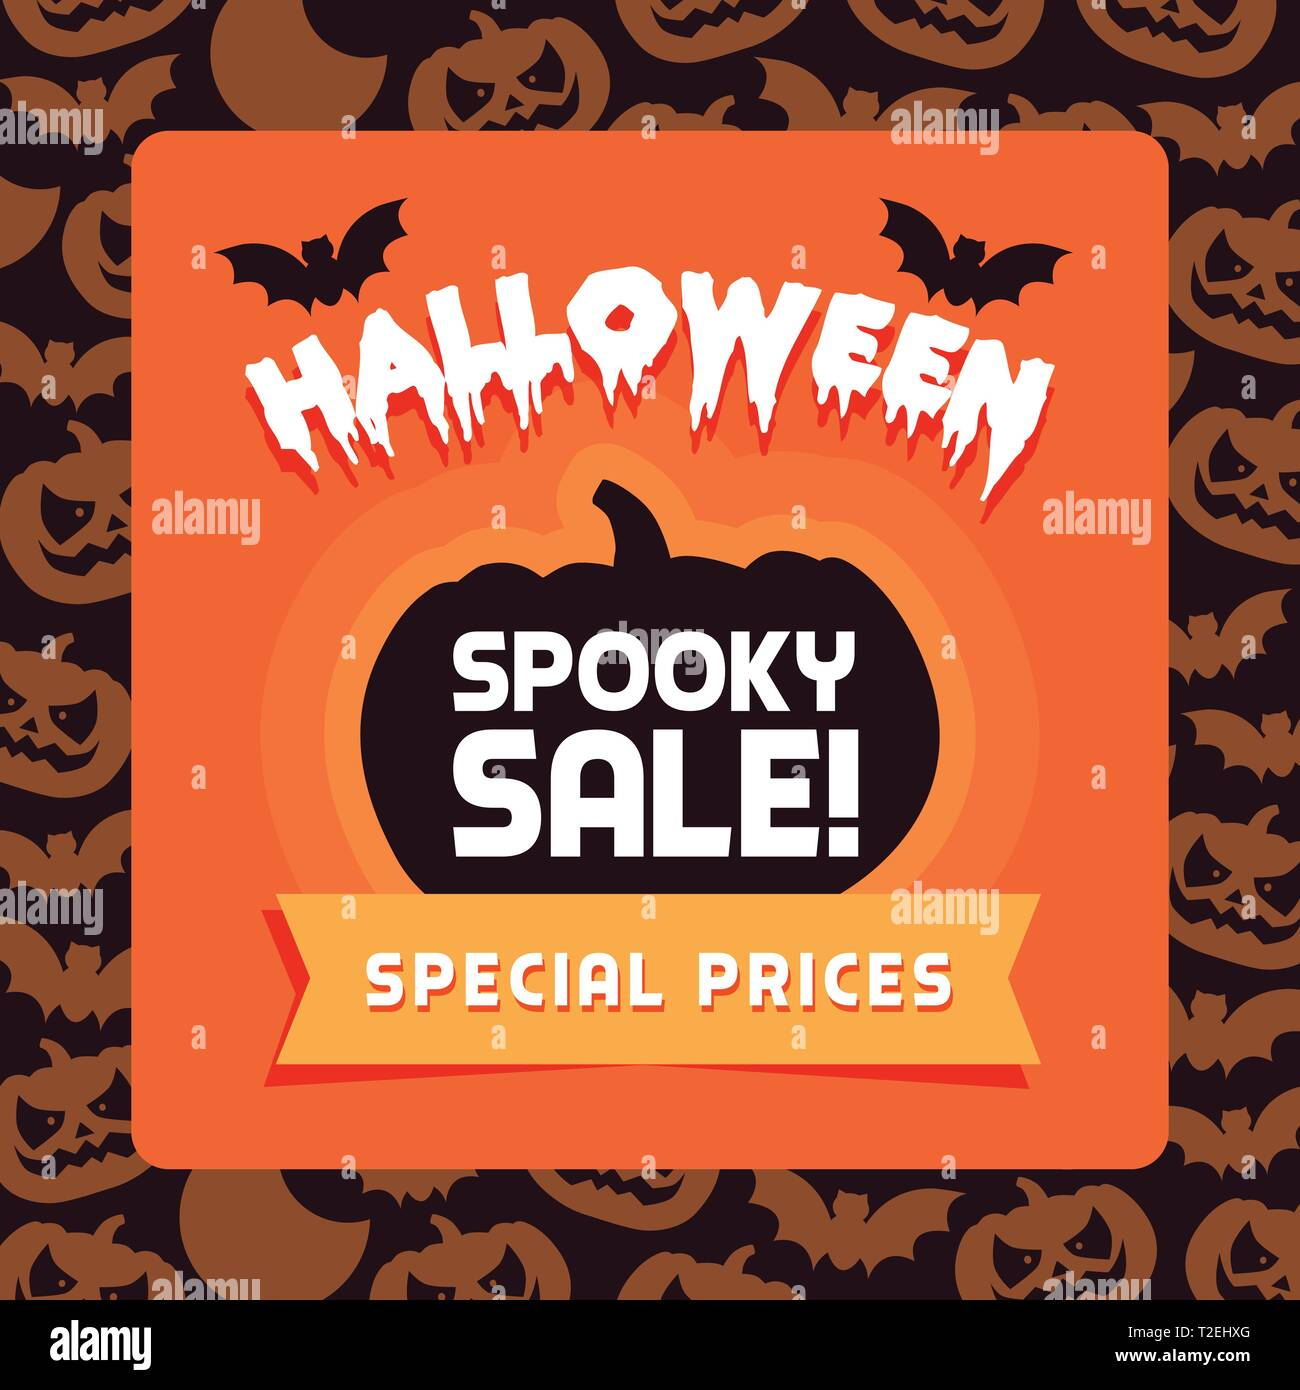 Happy Halloween promotional sales advertisement with pumpkins and bats - Stock Vector